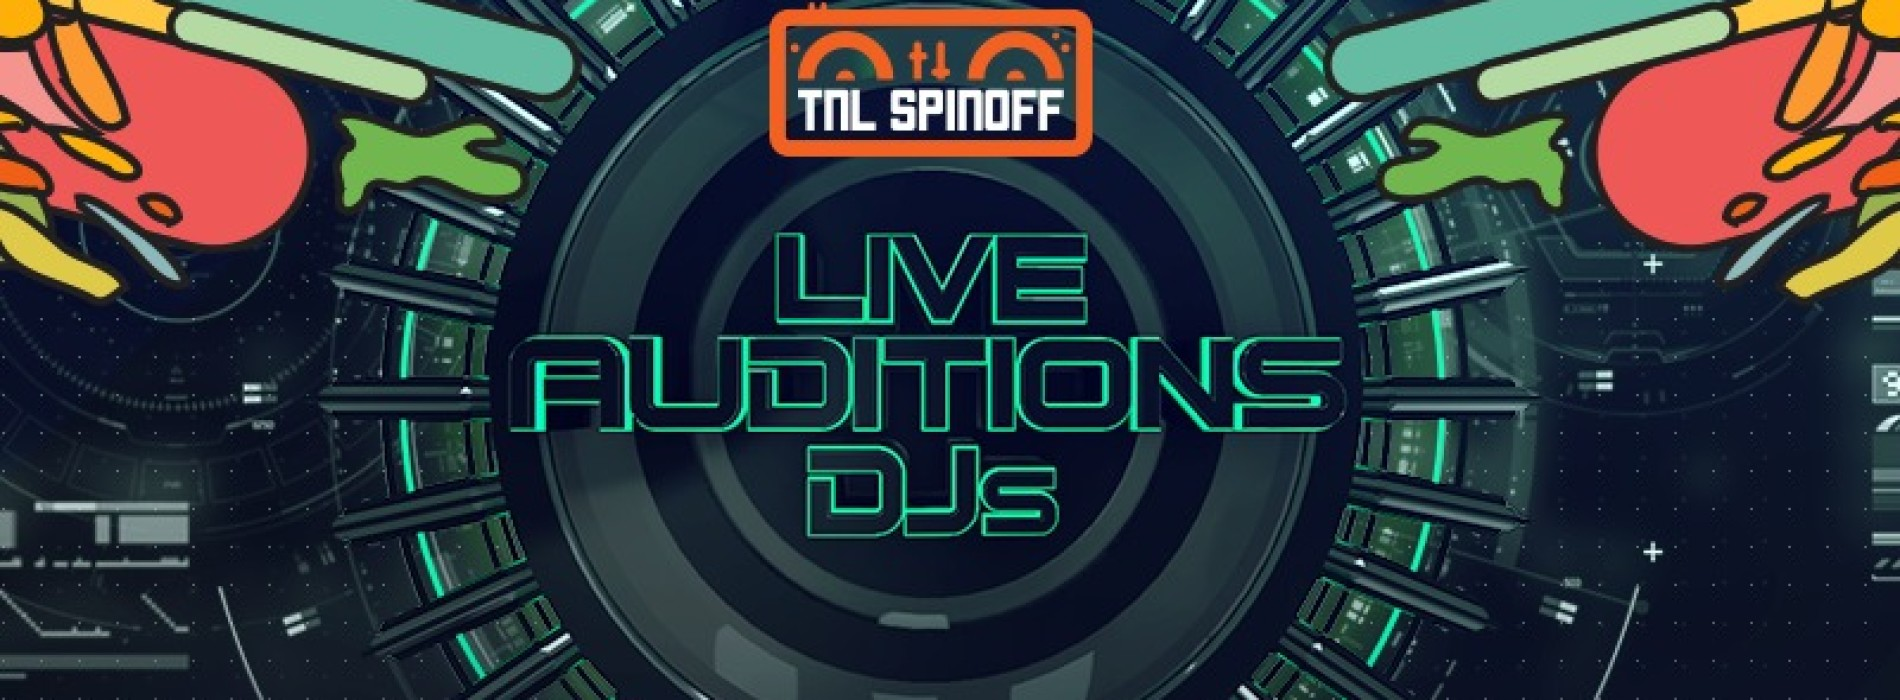 TNL SpinOff & Last Week's Highlights Of Live Auditions